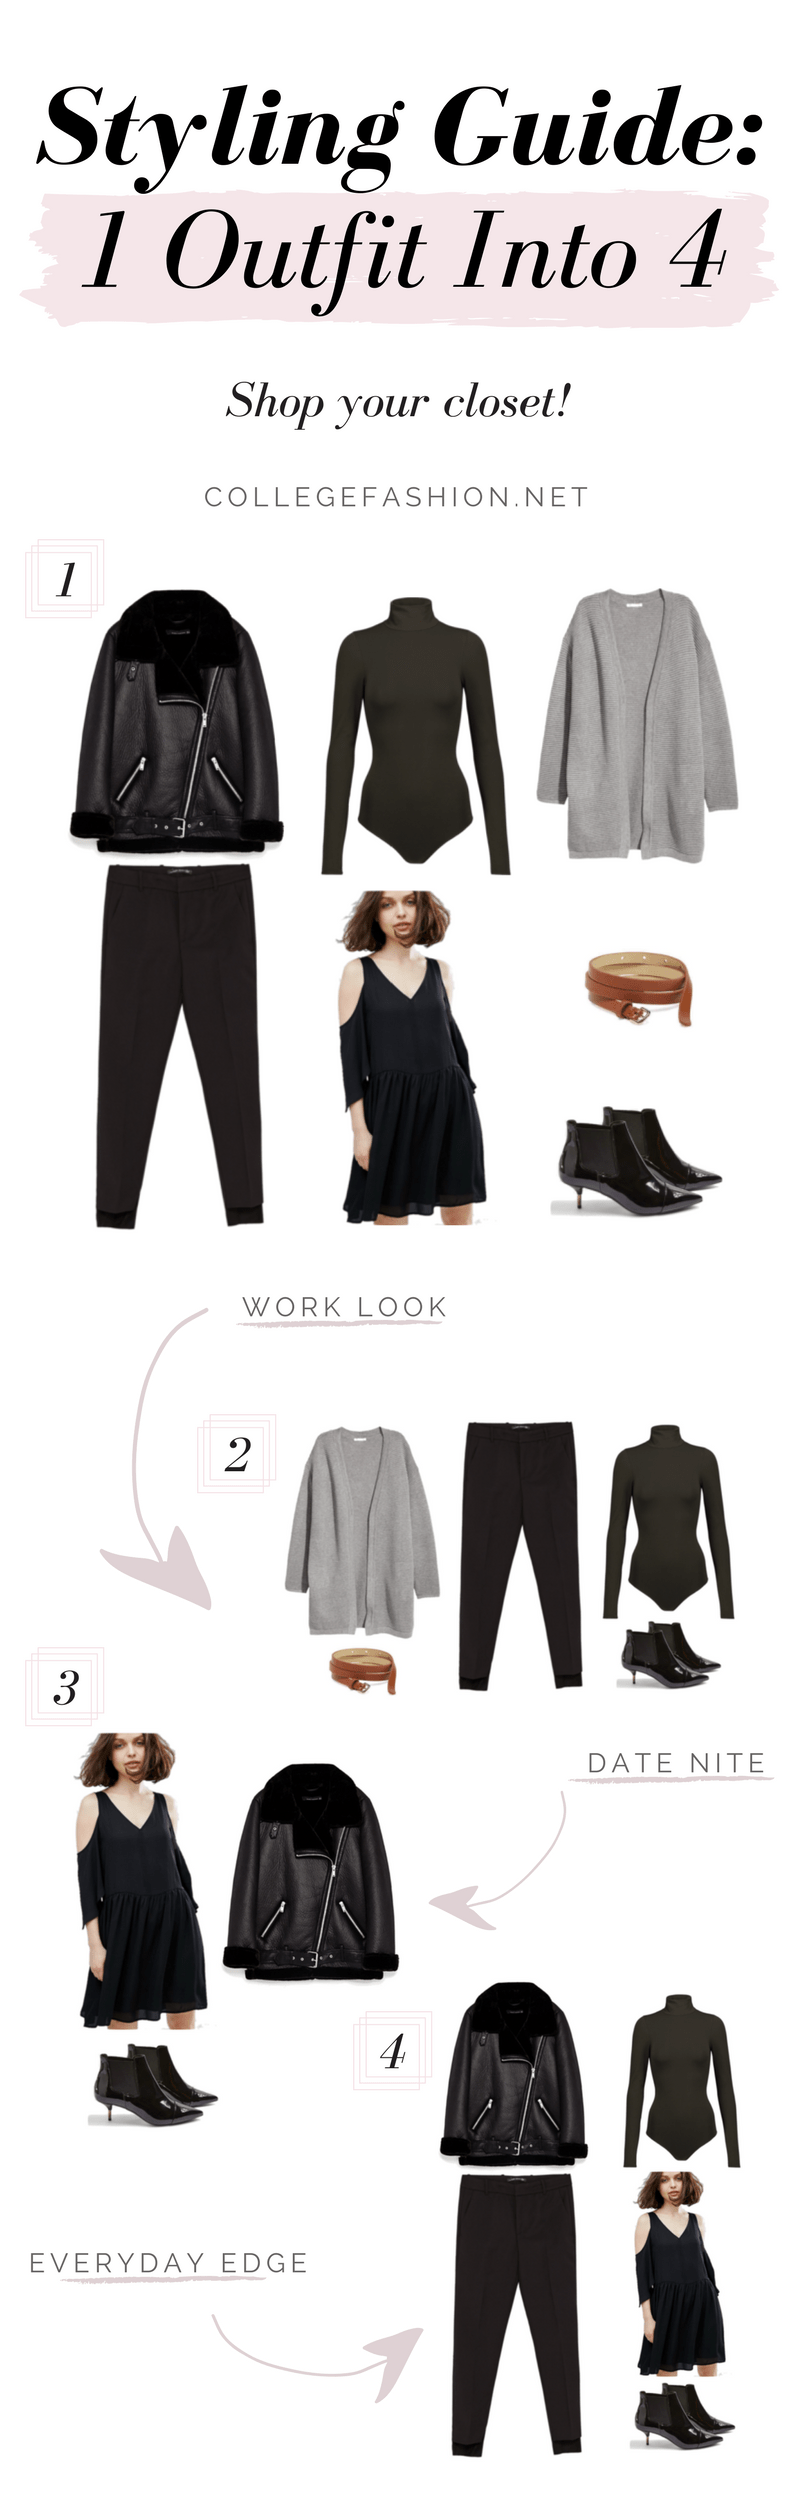 How to turn one outfit into four: Styling guide with four outfits using the same pieces